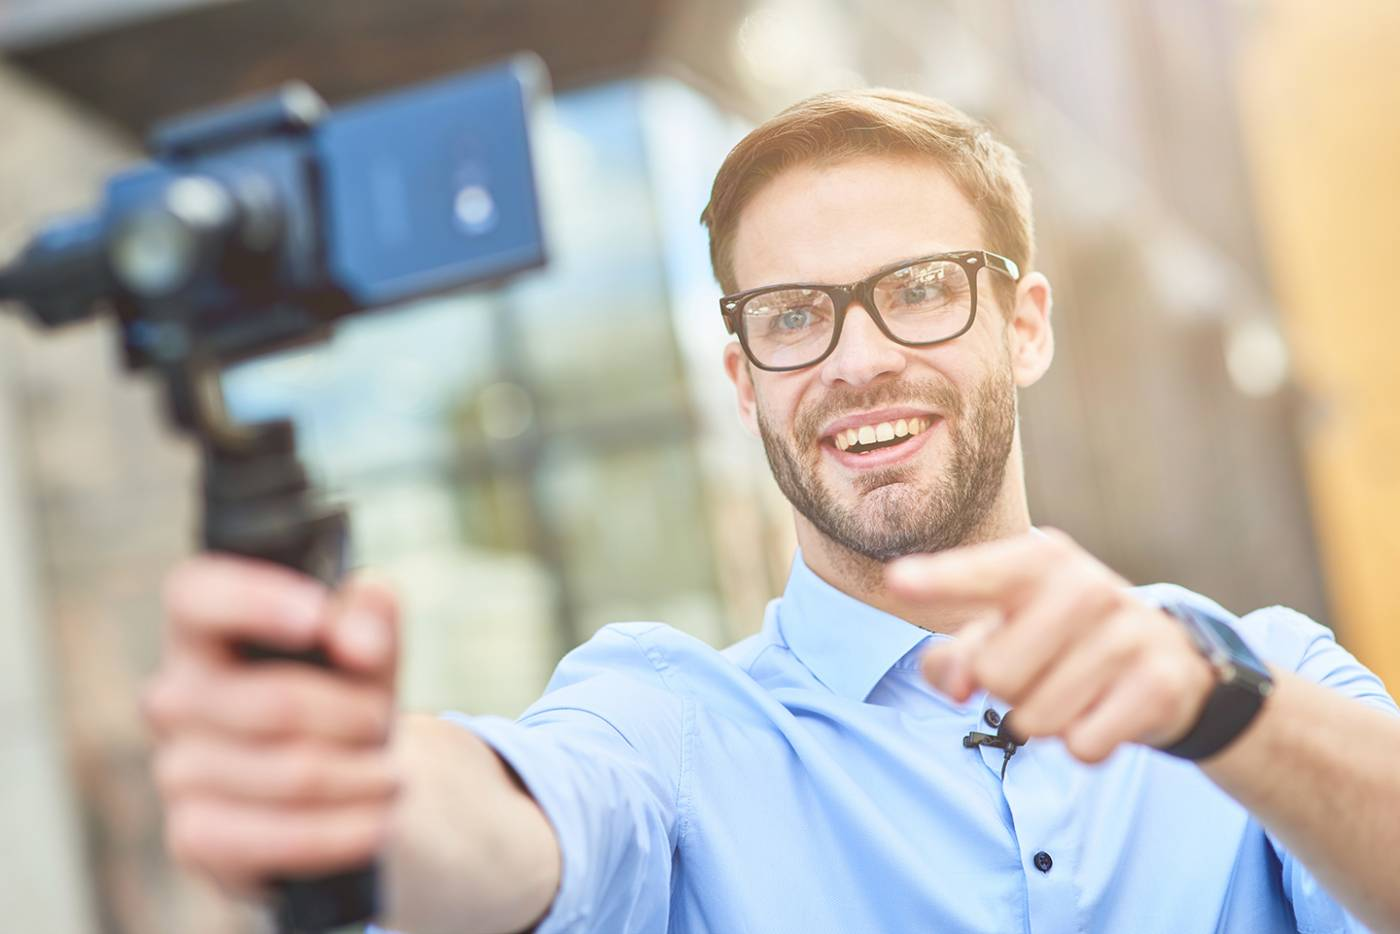 Image of man holding a gimbal with a smartphone filming himself